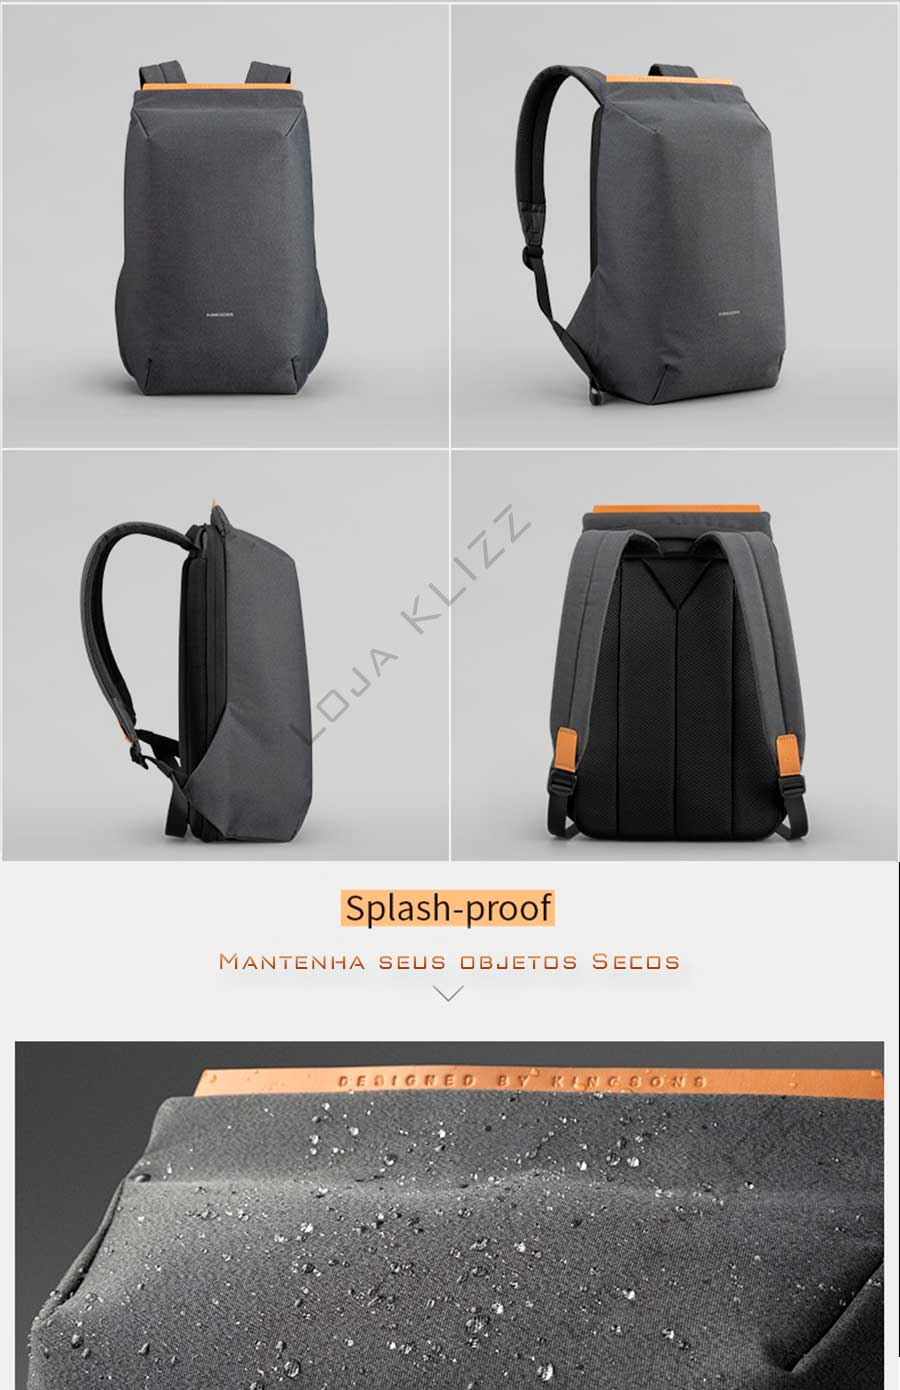 Mochila Antifurto USB Kingsons Notebook Impermeável Minimalista